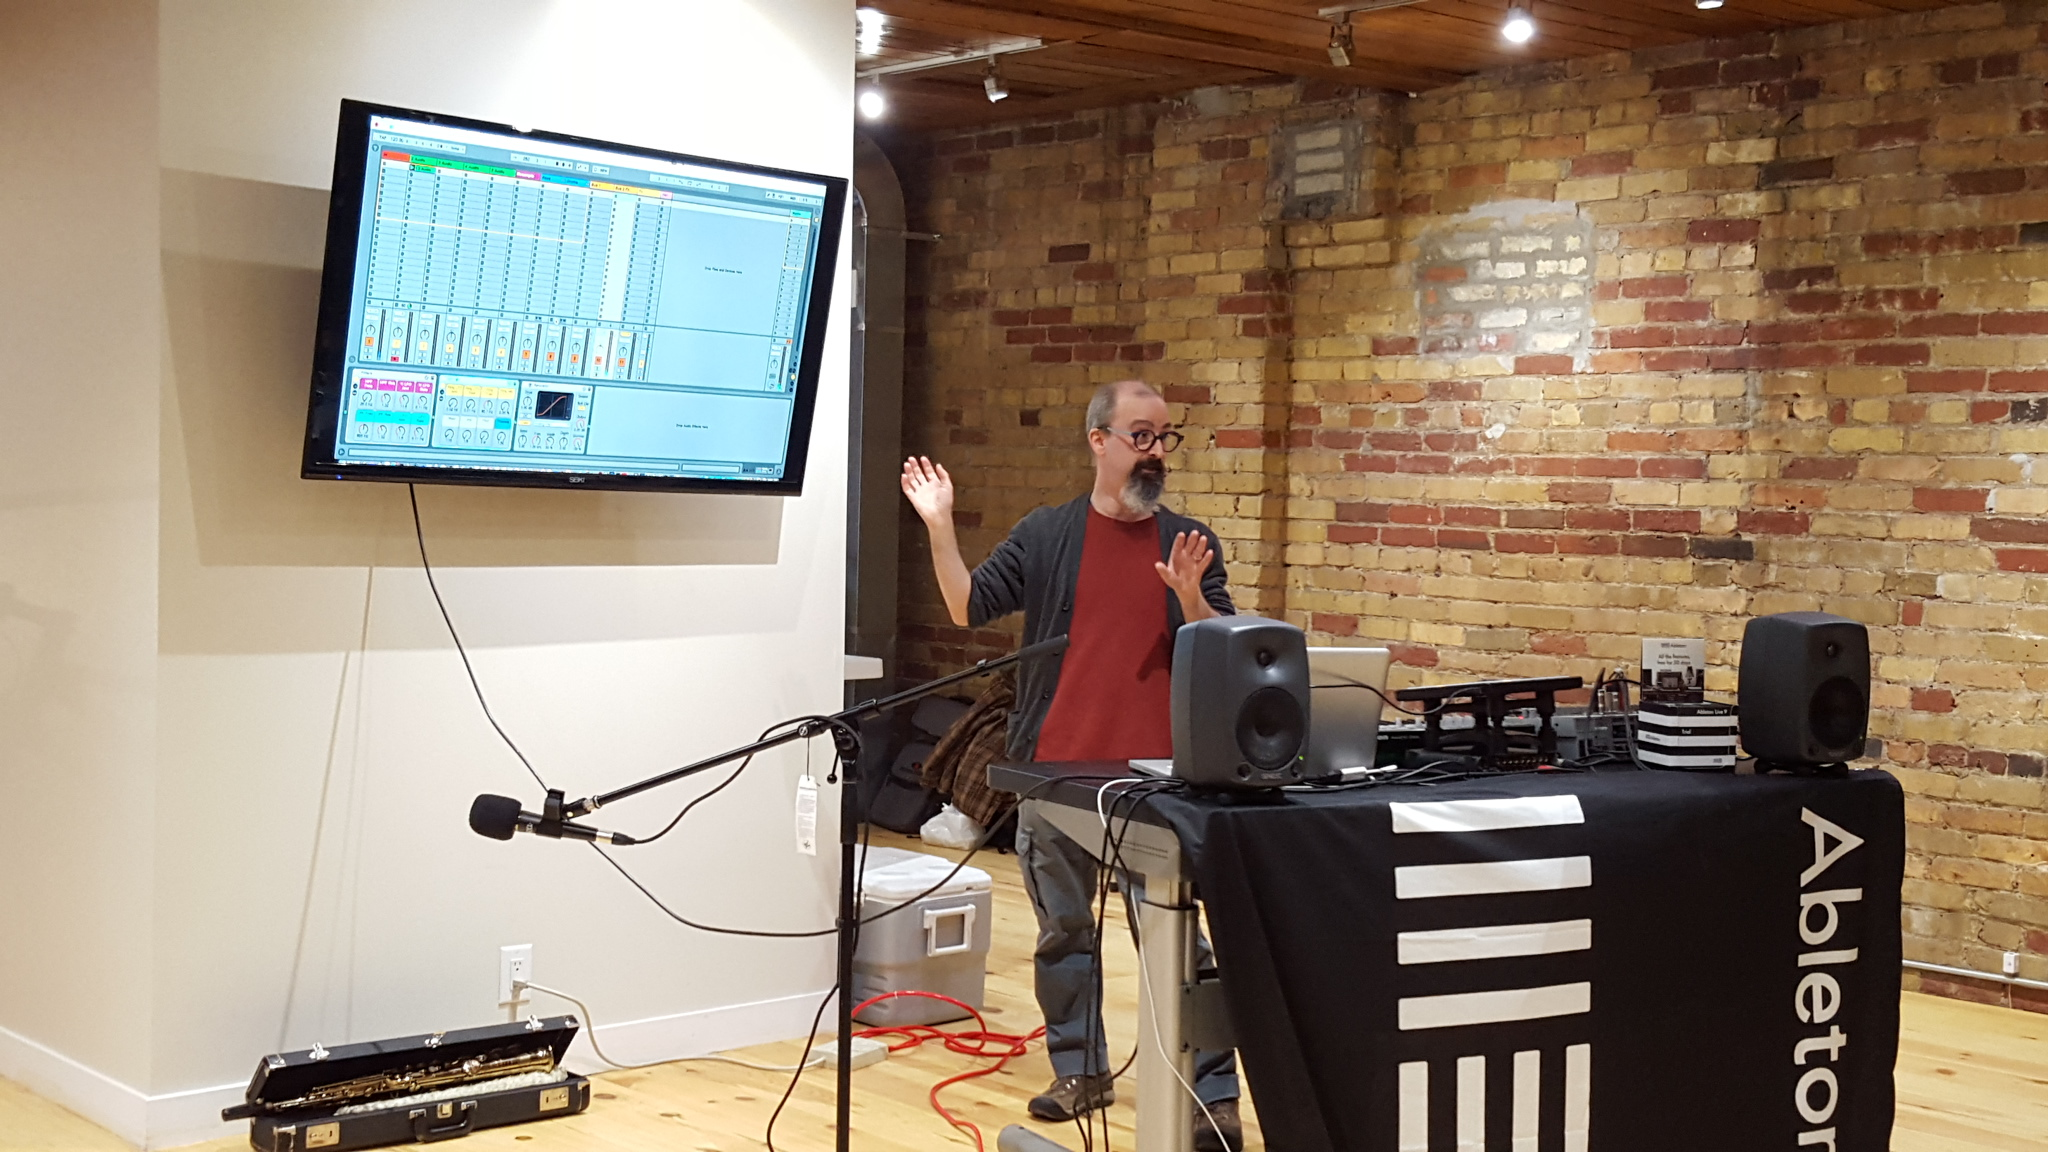 Giving a presentation on my Live improvisation template to the Toronto Ableton Live Users Group, at Saved By Technology - 2016-04-11 (photo by Heidi Chan)